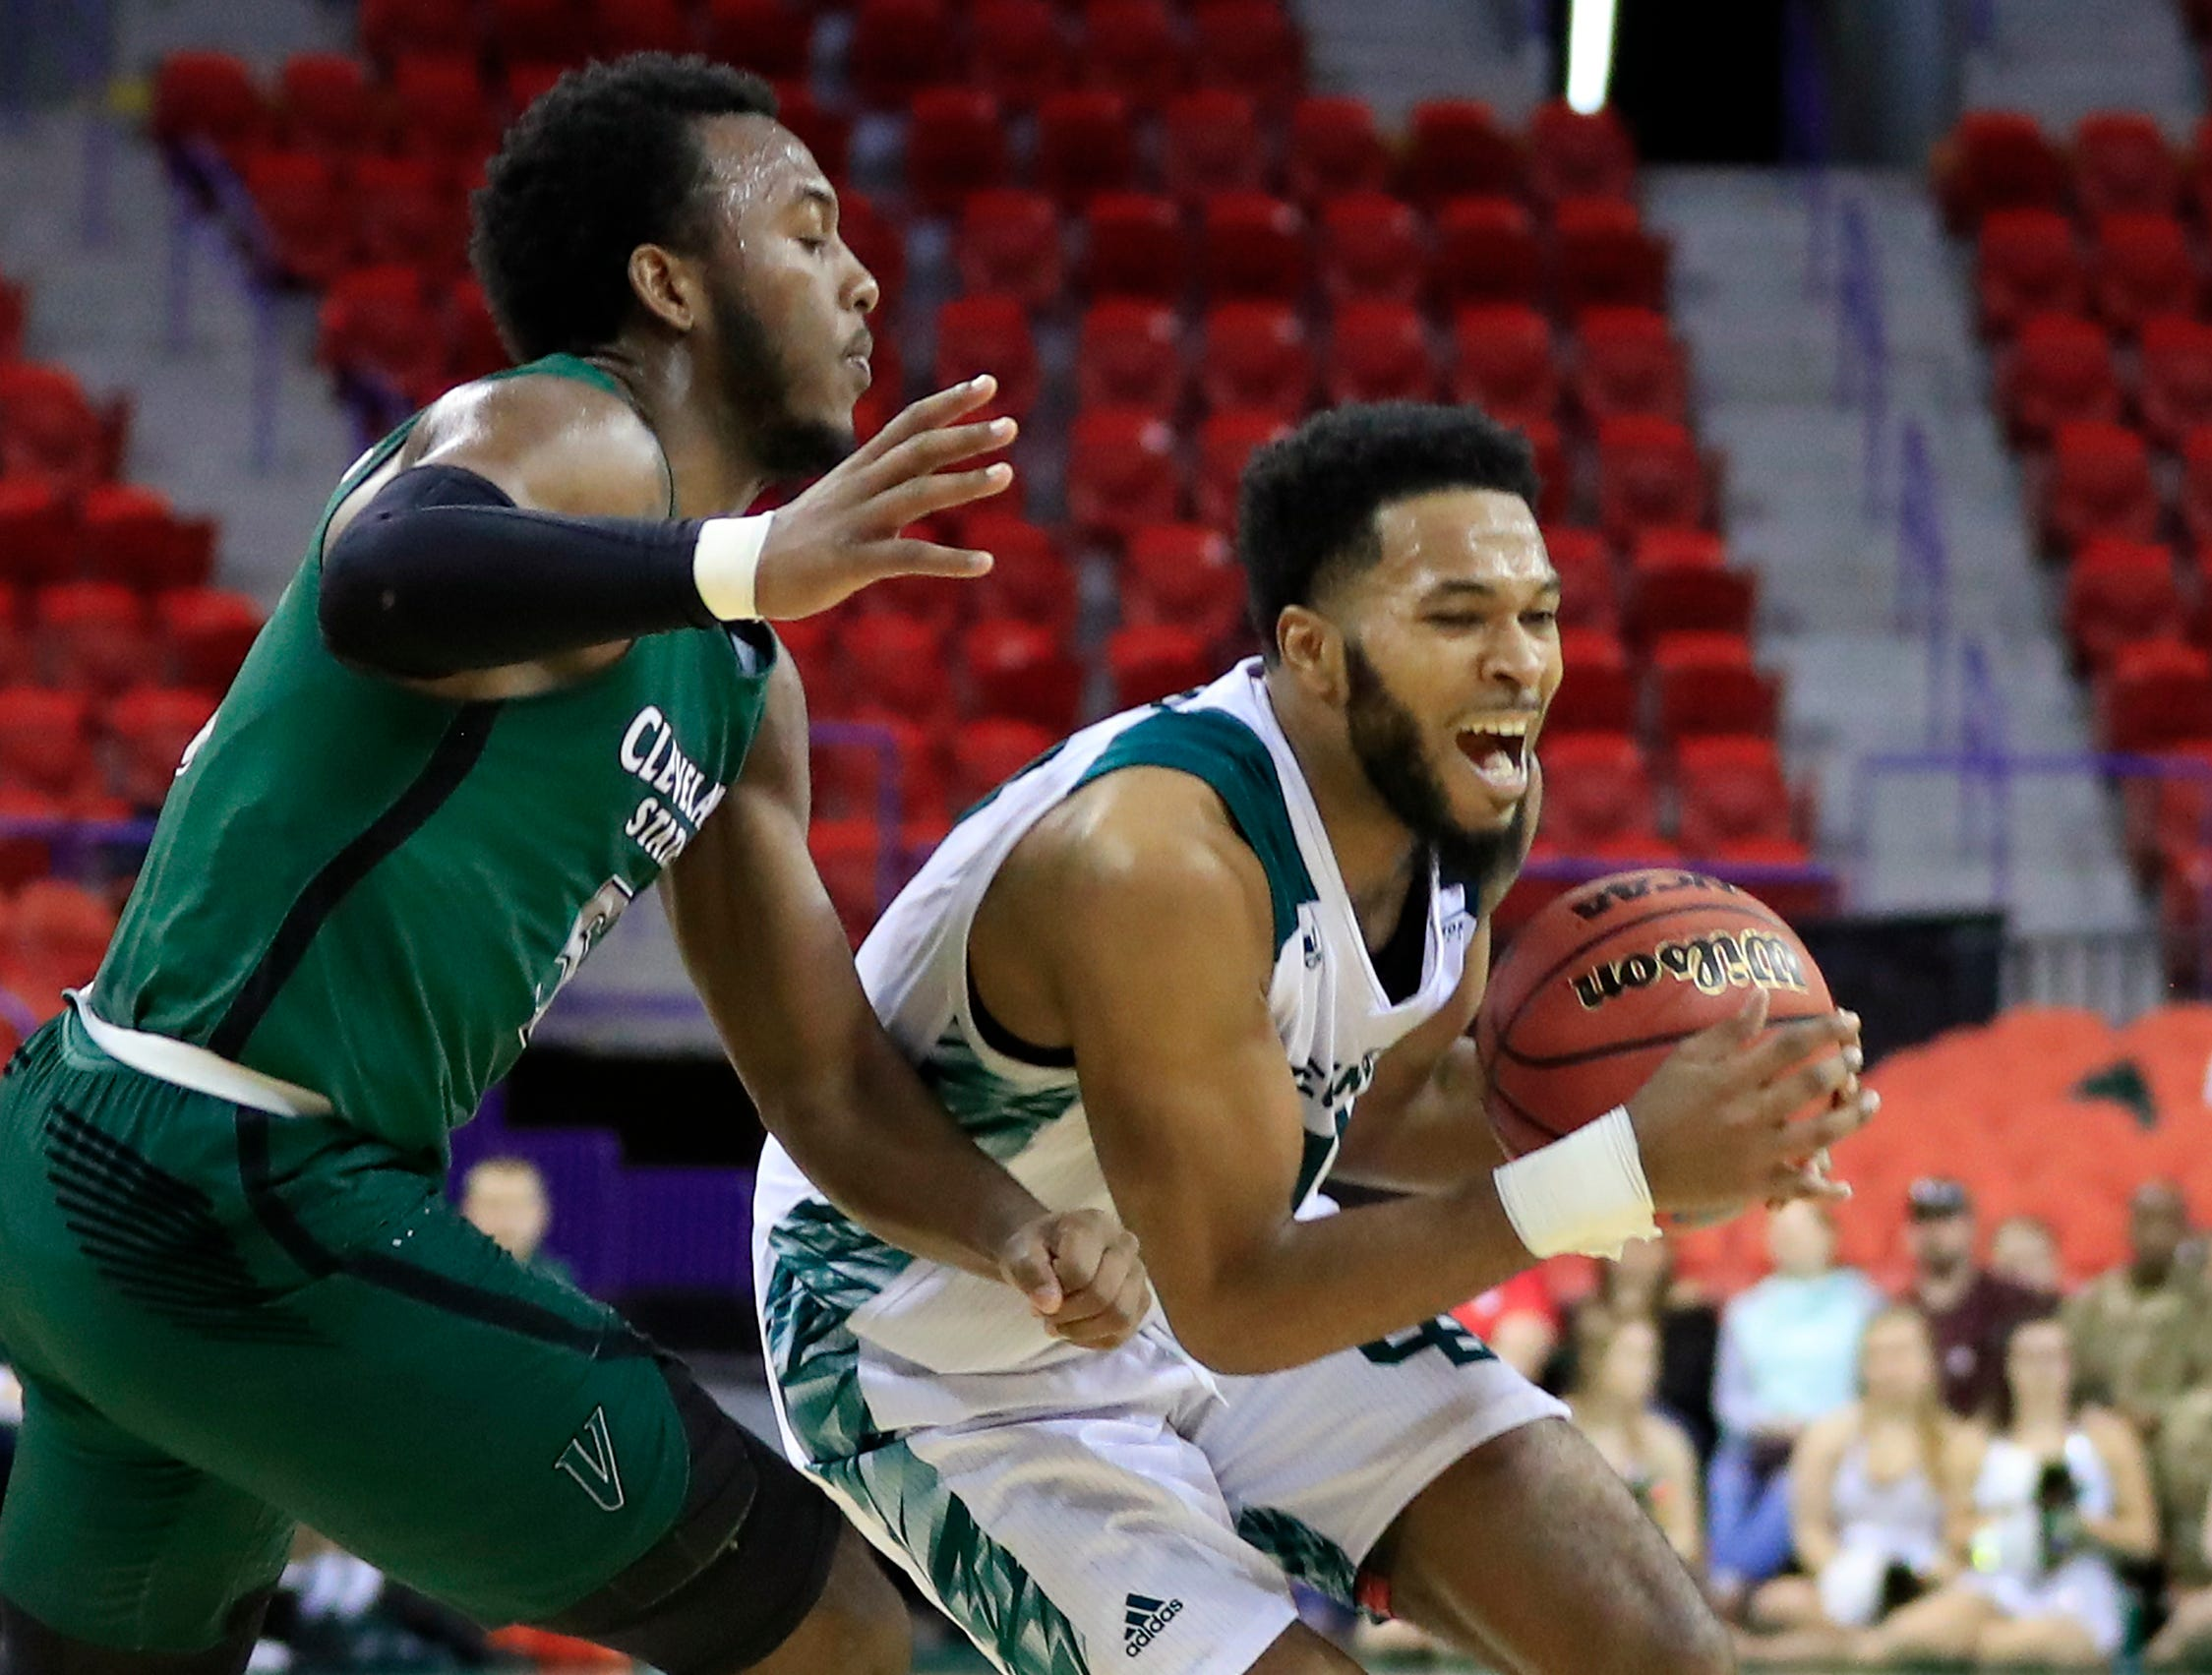 Green Bay Phoenix guard JayQuan McCloud (11) steals the ball from Cleveland State Vikings guard Rashad Williams (5) in a Horizon League basketball game at the Resch Center on Saturday, January 5, 2019 in Green Bay, Wis.